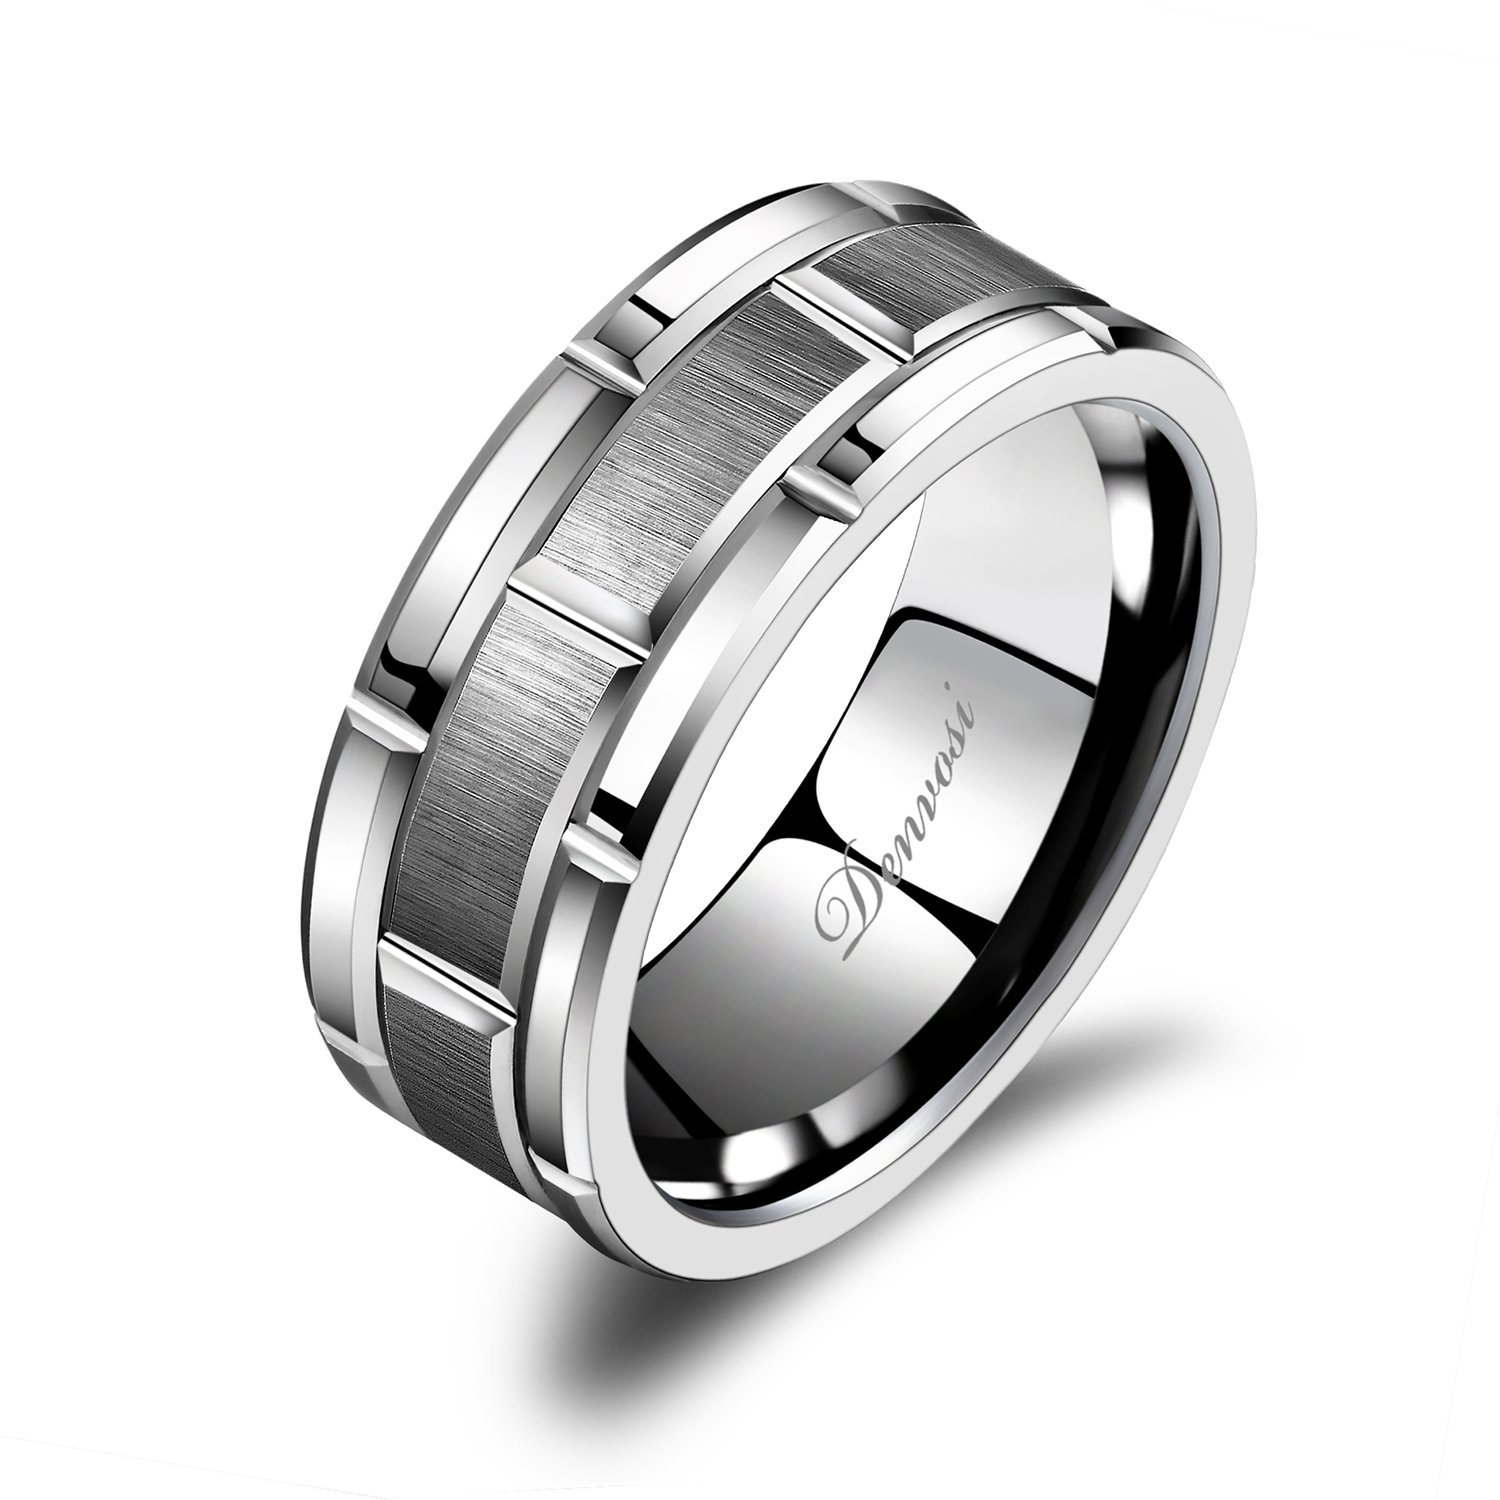 Denvosi Men Wedding Band Tungsten Ring 8MM Brick Pattern Matte Brushed Silver Surface Engagement Anniversary Ring Comfort Fit Size 11